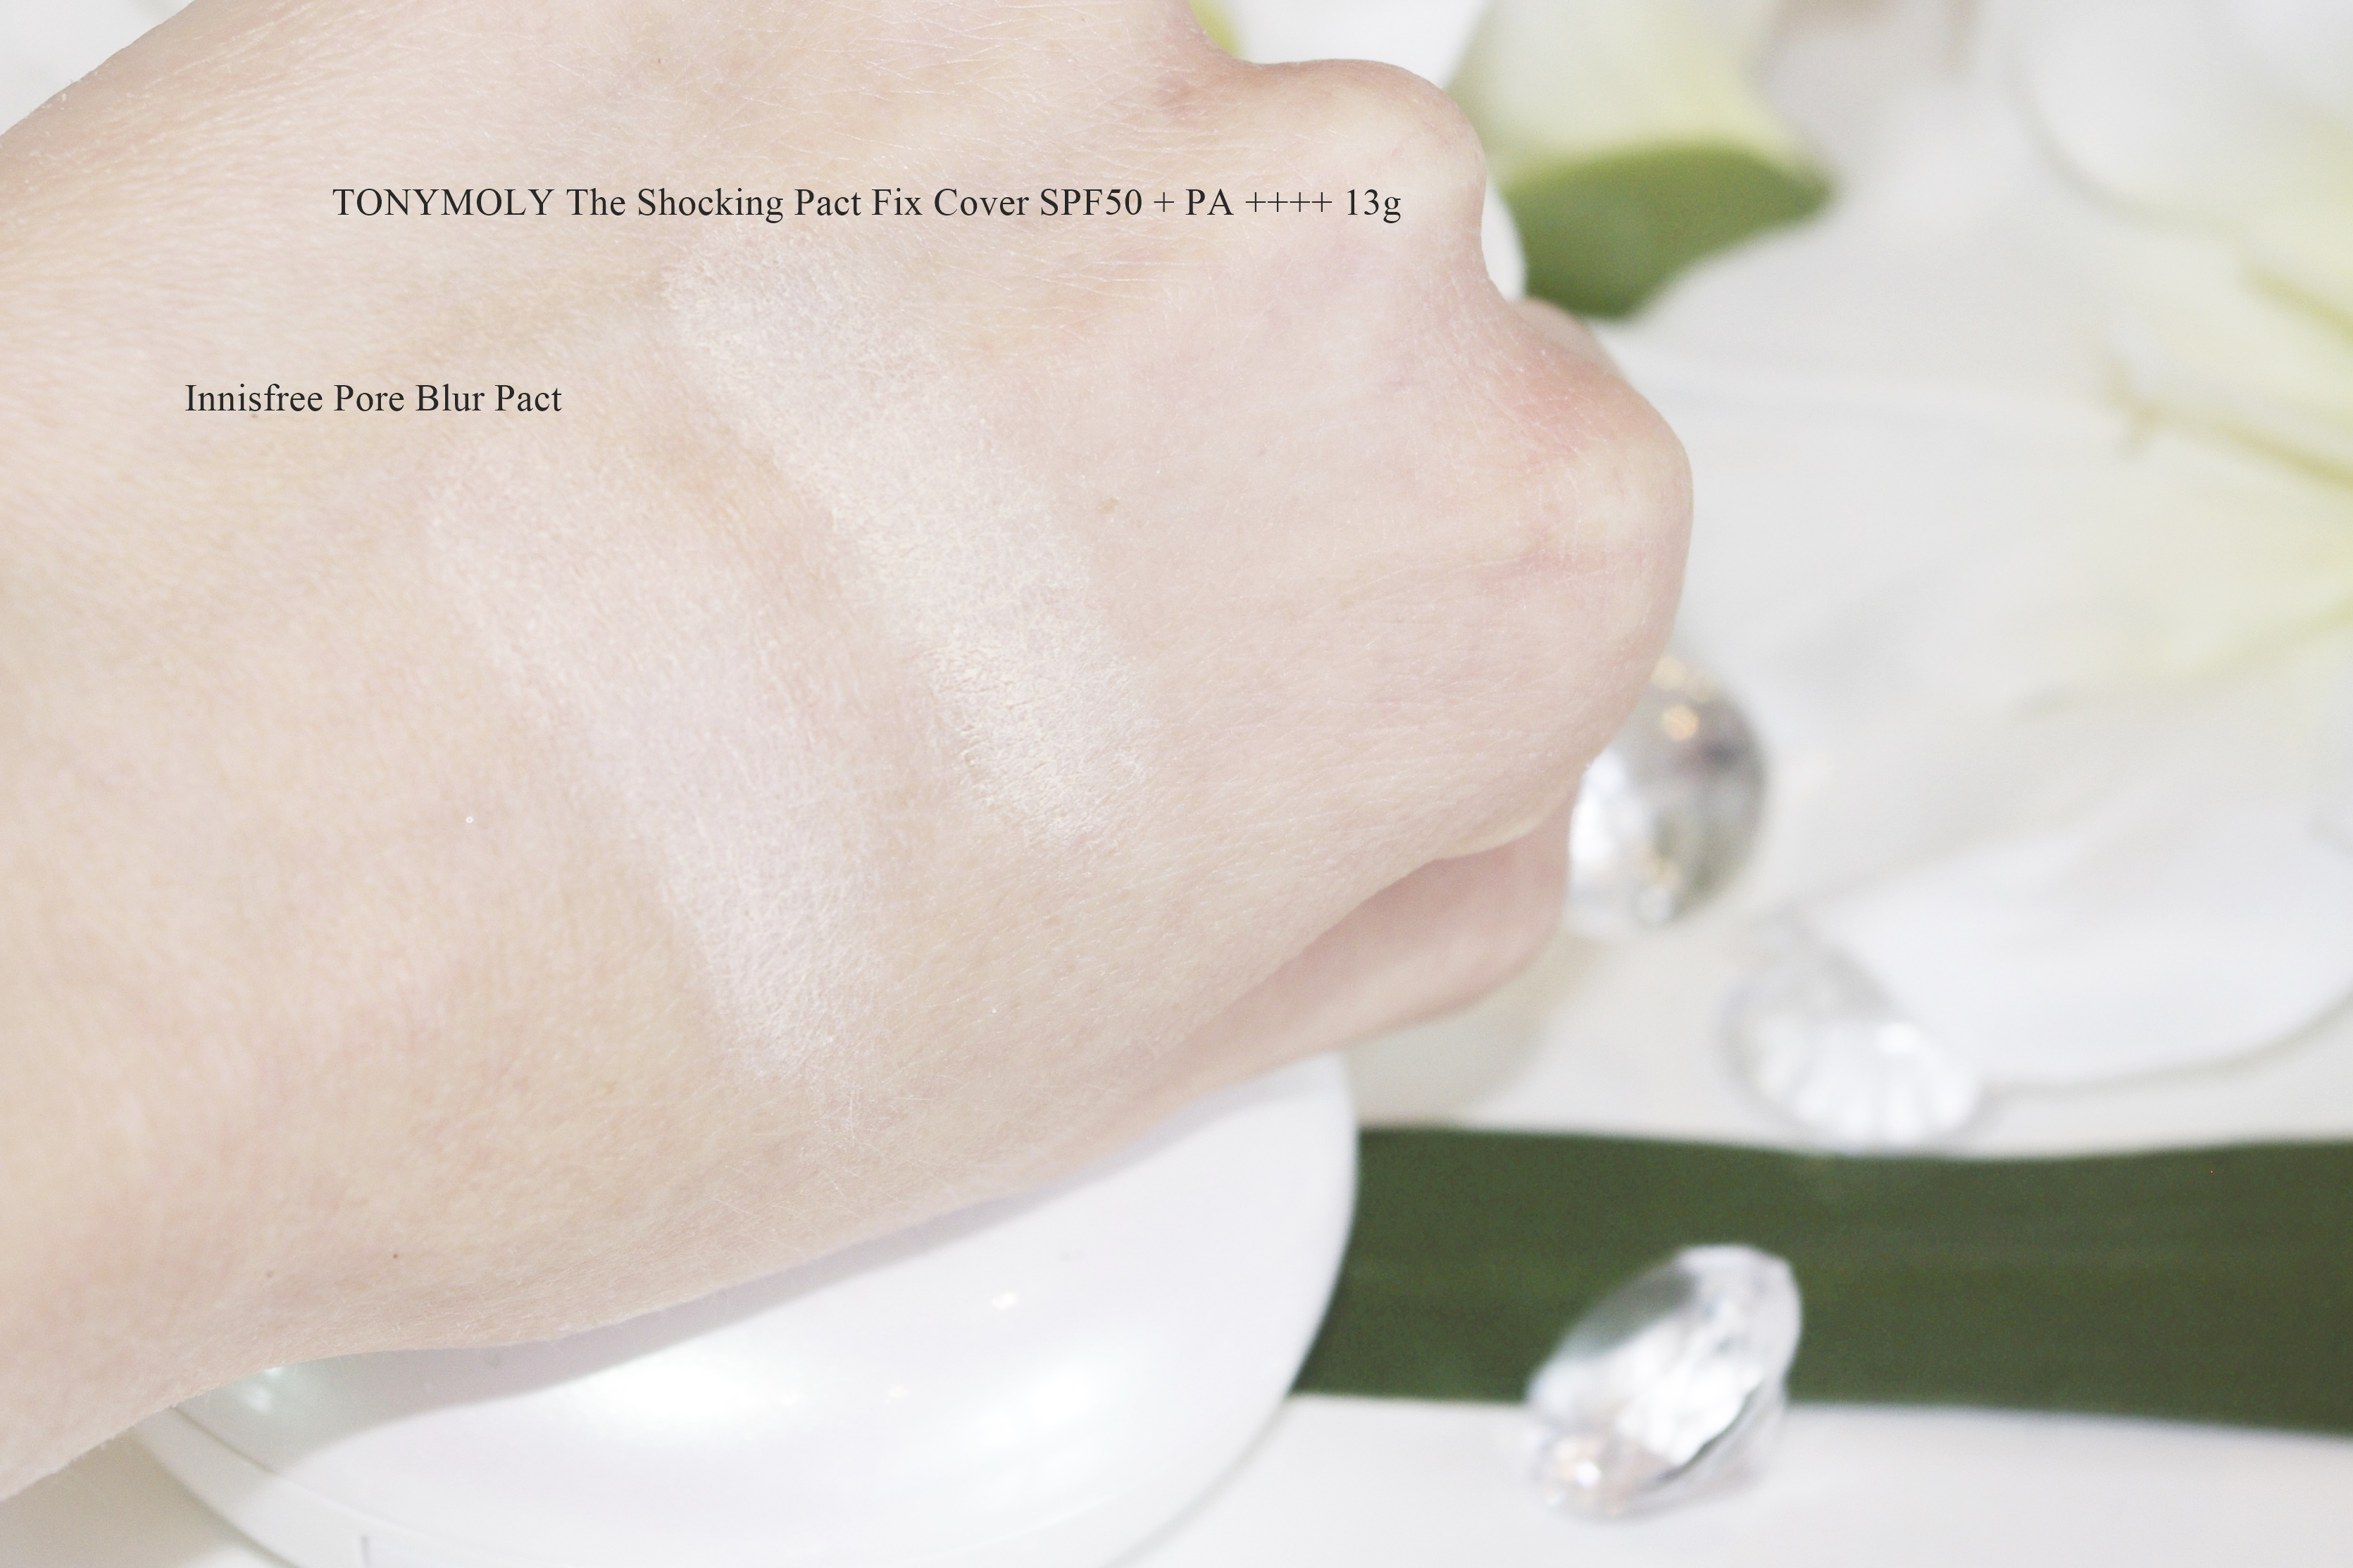 TONYMOLY The Shocking Pact Fix Cover SPF50+ PA ++++